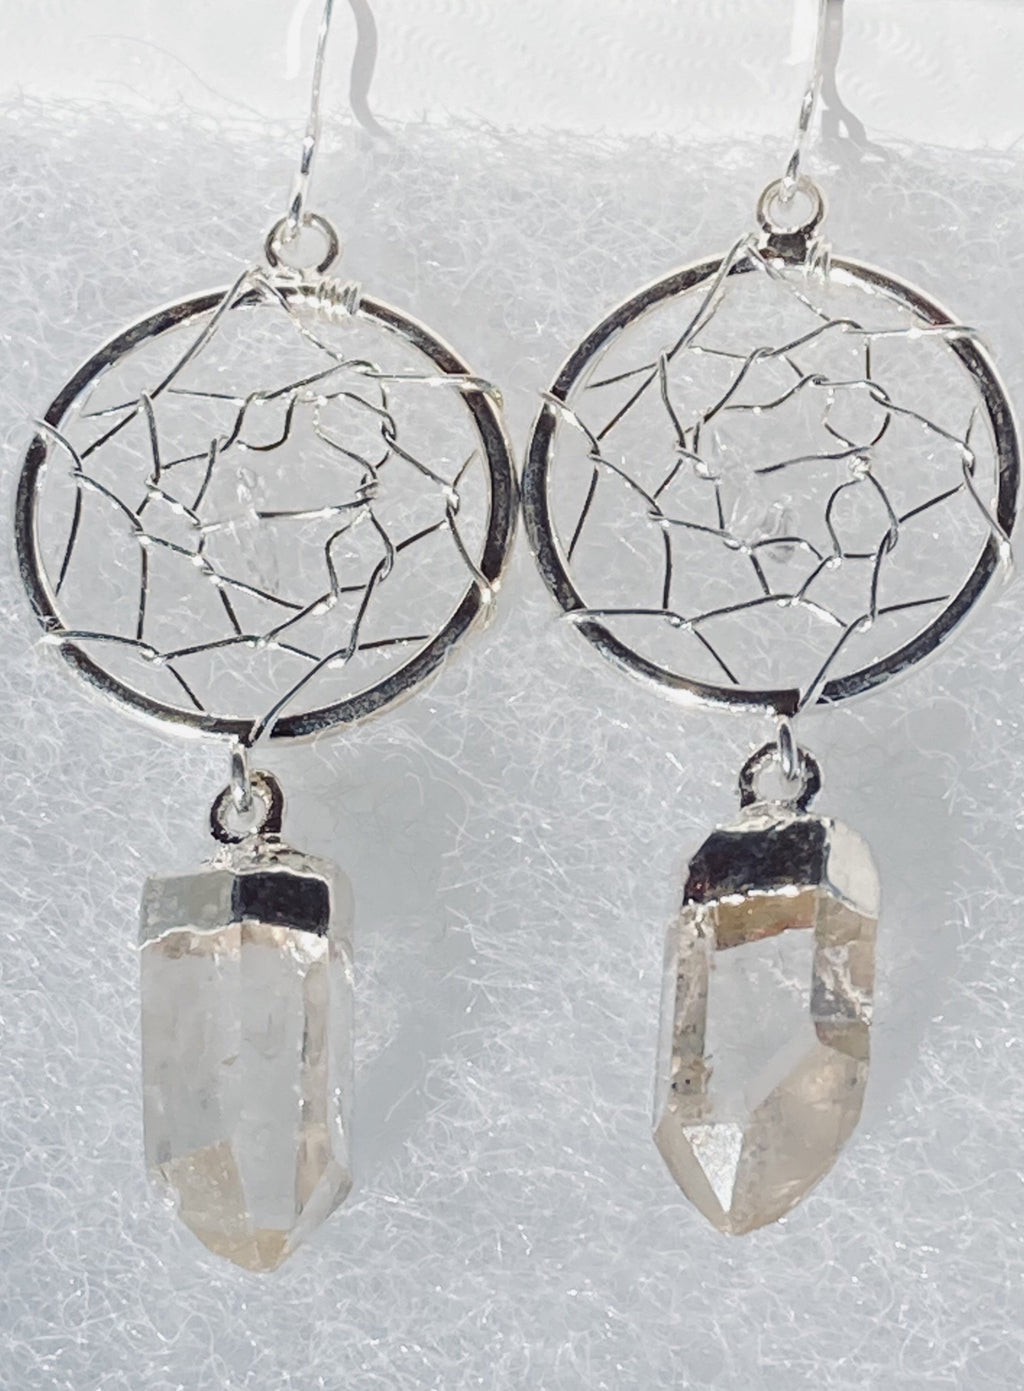 Crystal Dream Catcher earrings